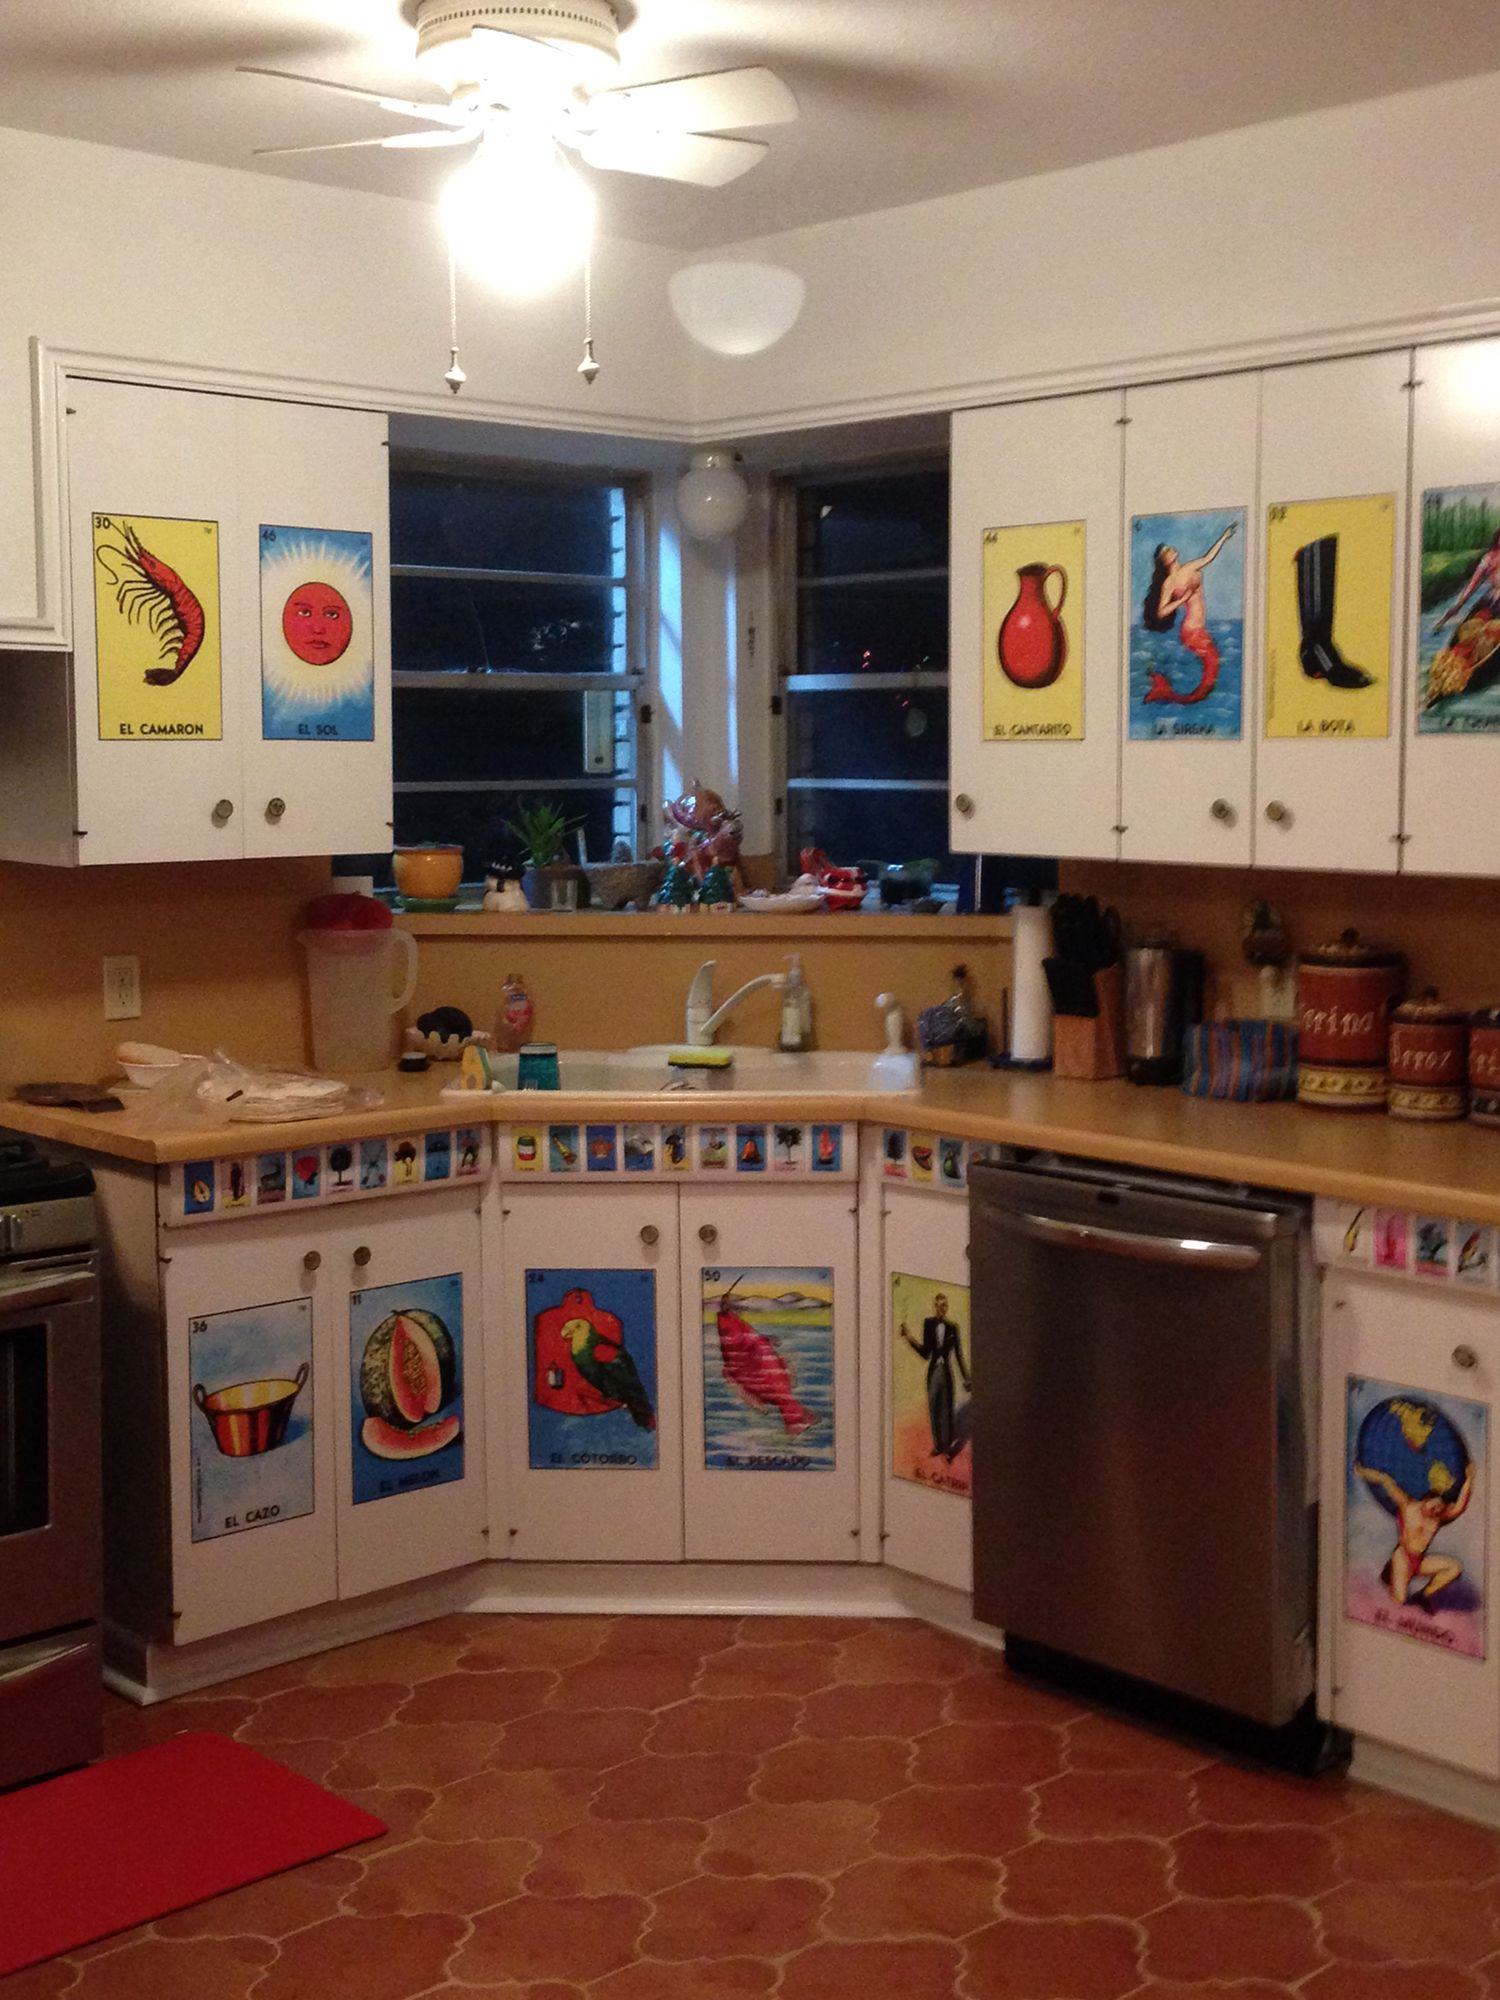 Loteria Kitchen in 2019 | Mexican style decor, Kitchen ...